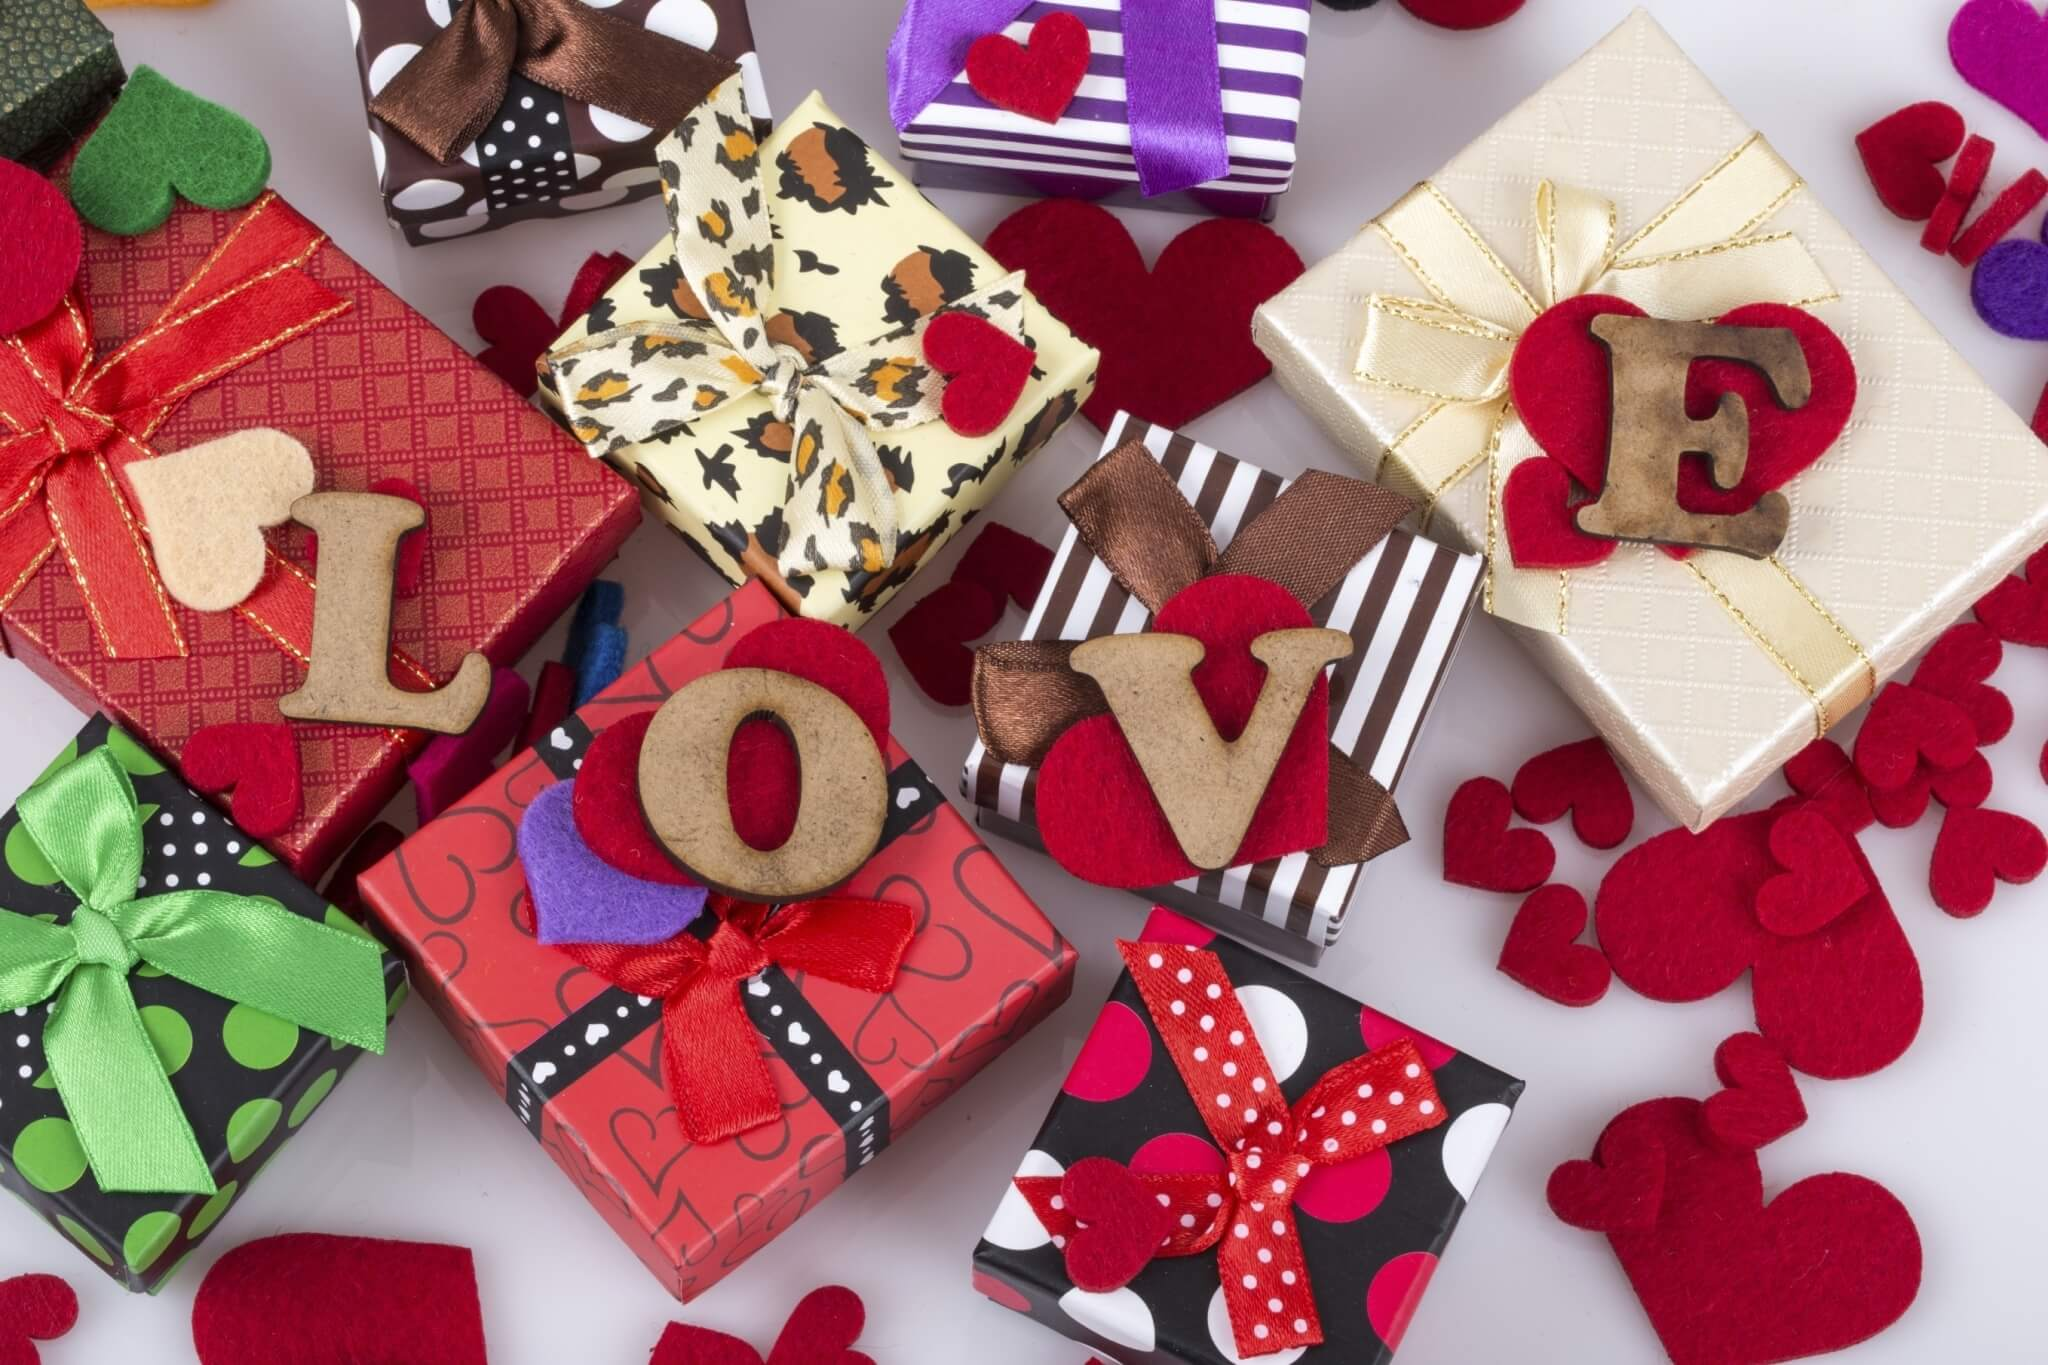 colorful-gift-boxes-and-hearts-000079682877_Large-1.jpg.jpeg